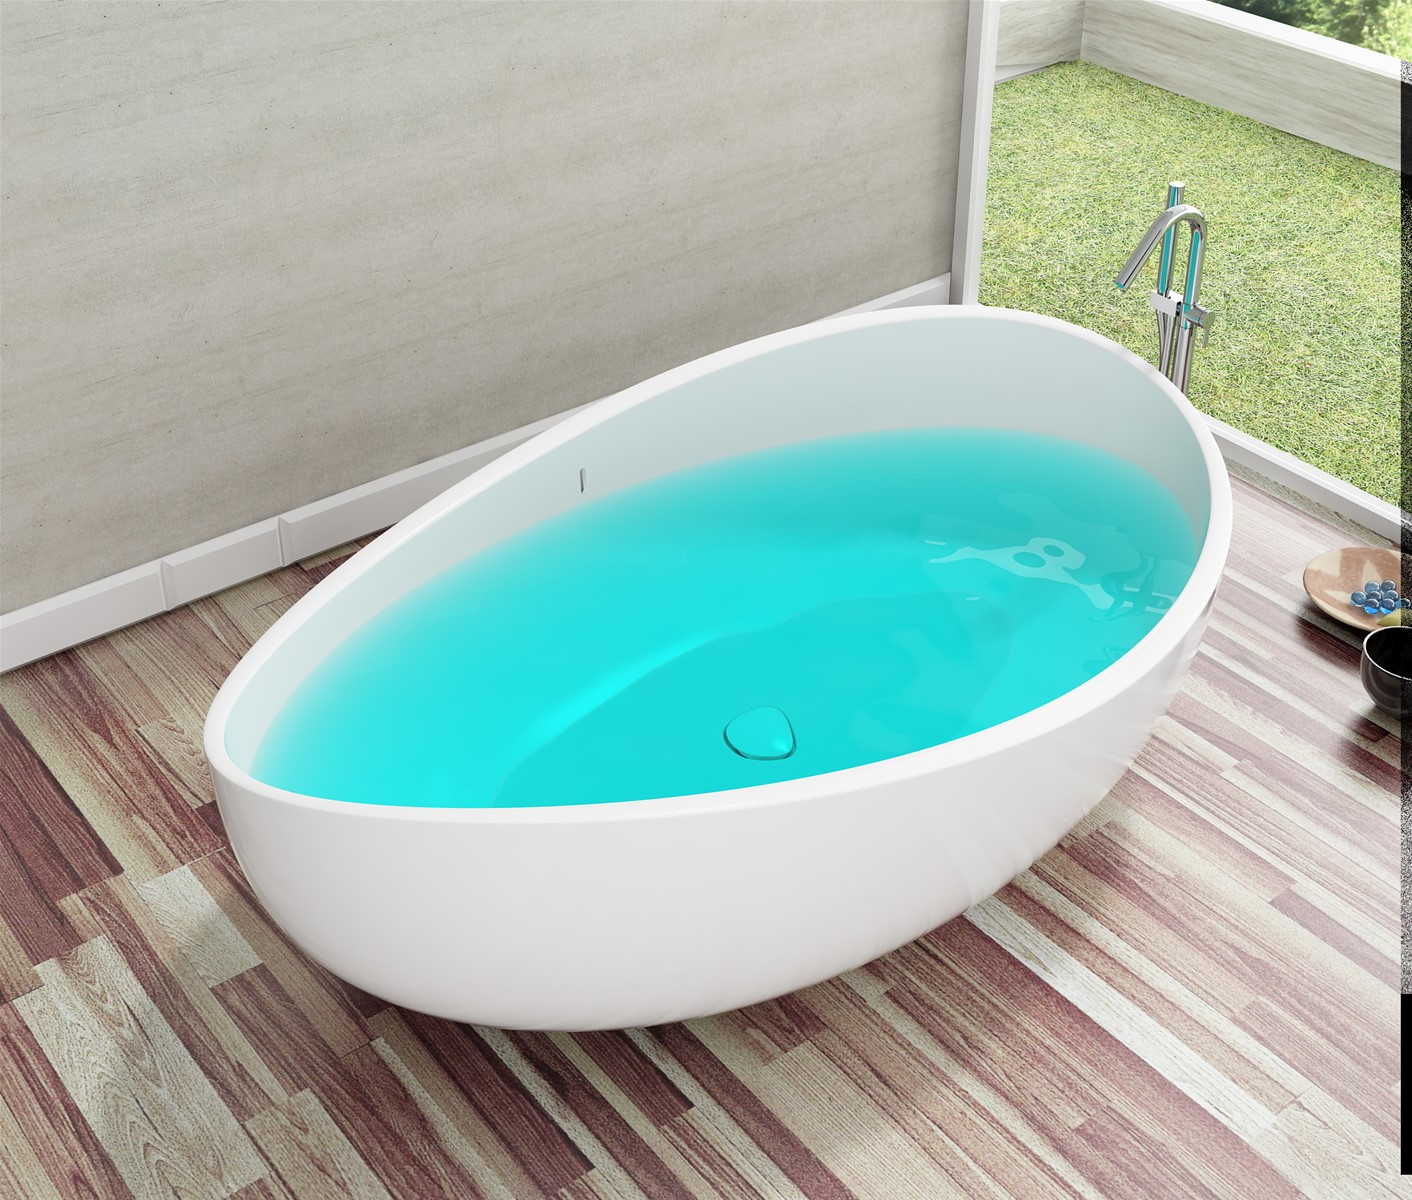 Acrylic Freestanding Bathtub Onda Factory And Manufacture